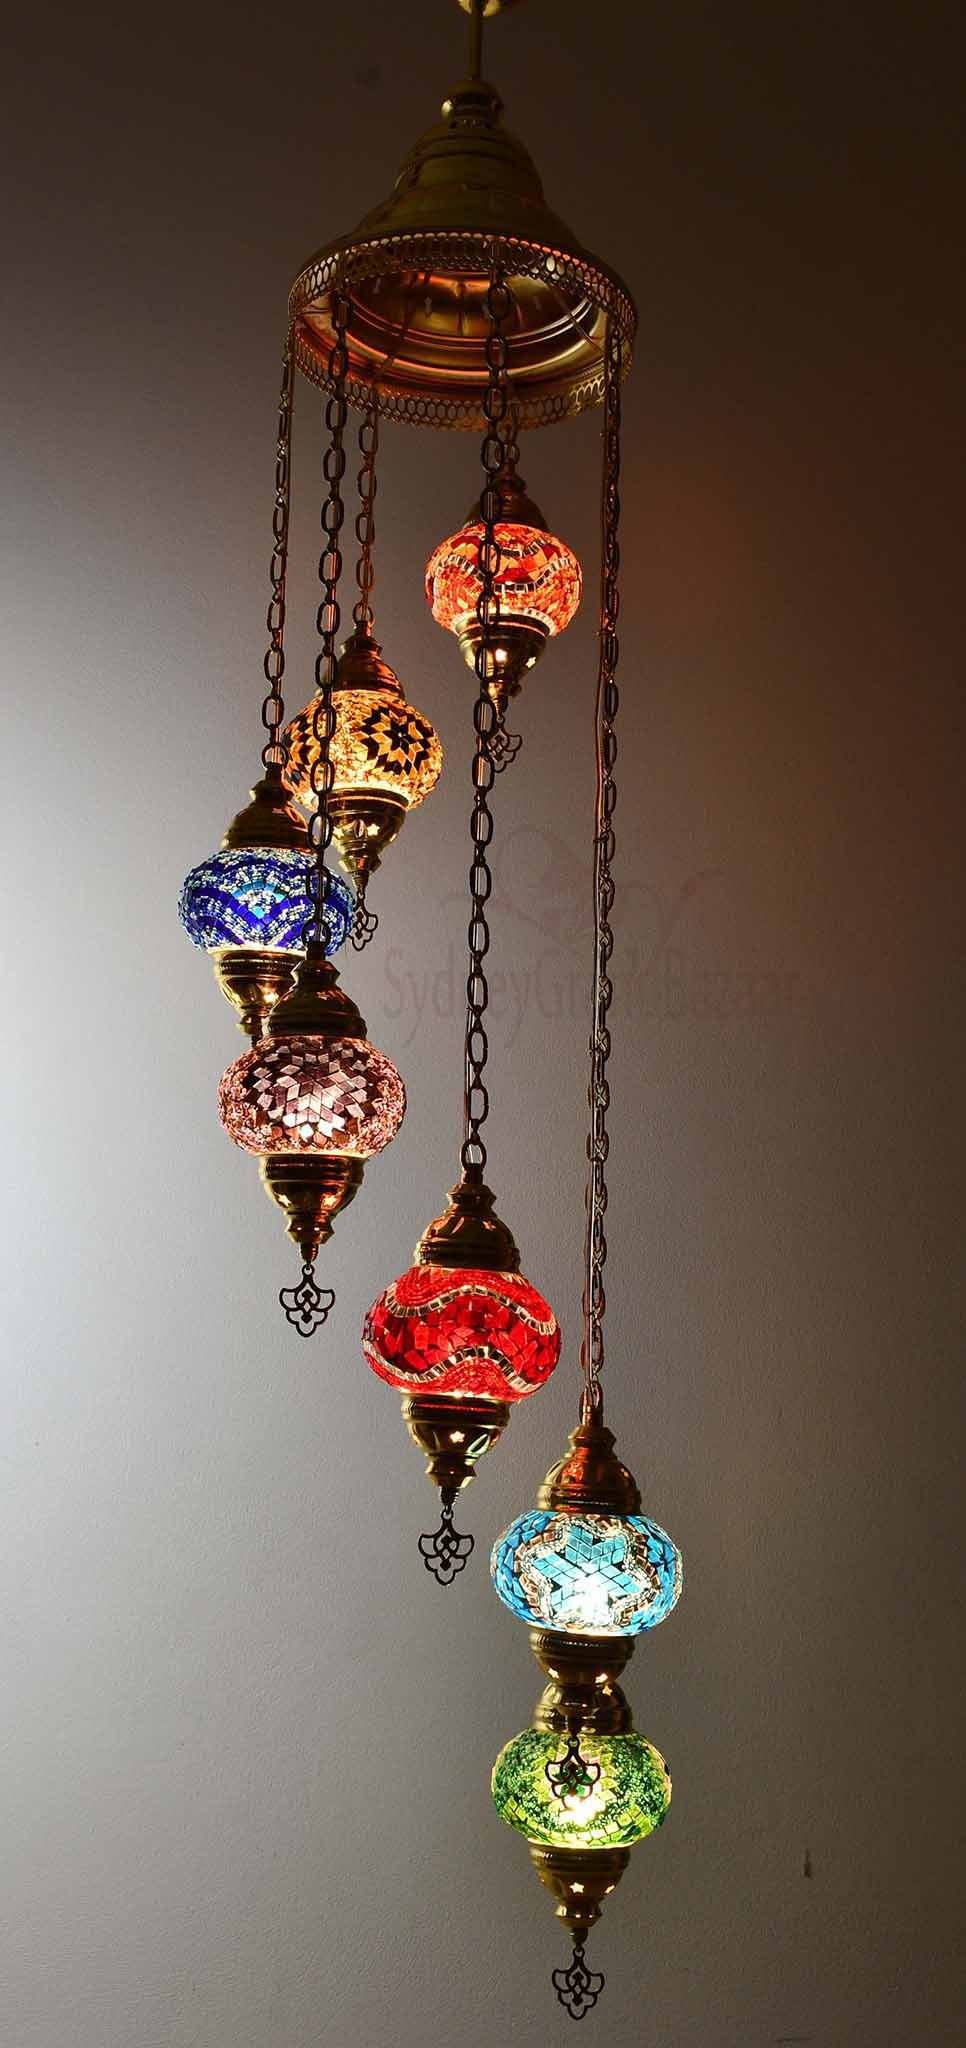 Turkish Mosaic Pendant Light 7 Globes in Gold Lighting Sydney Grand Bazaar Multicoloured 1